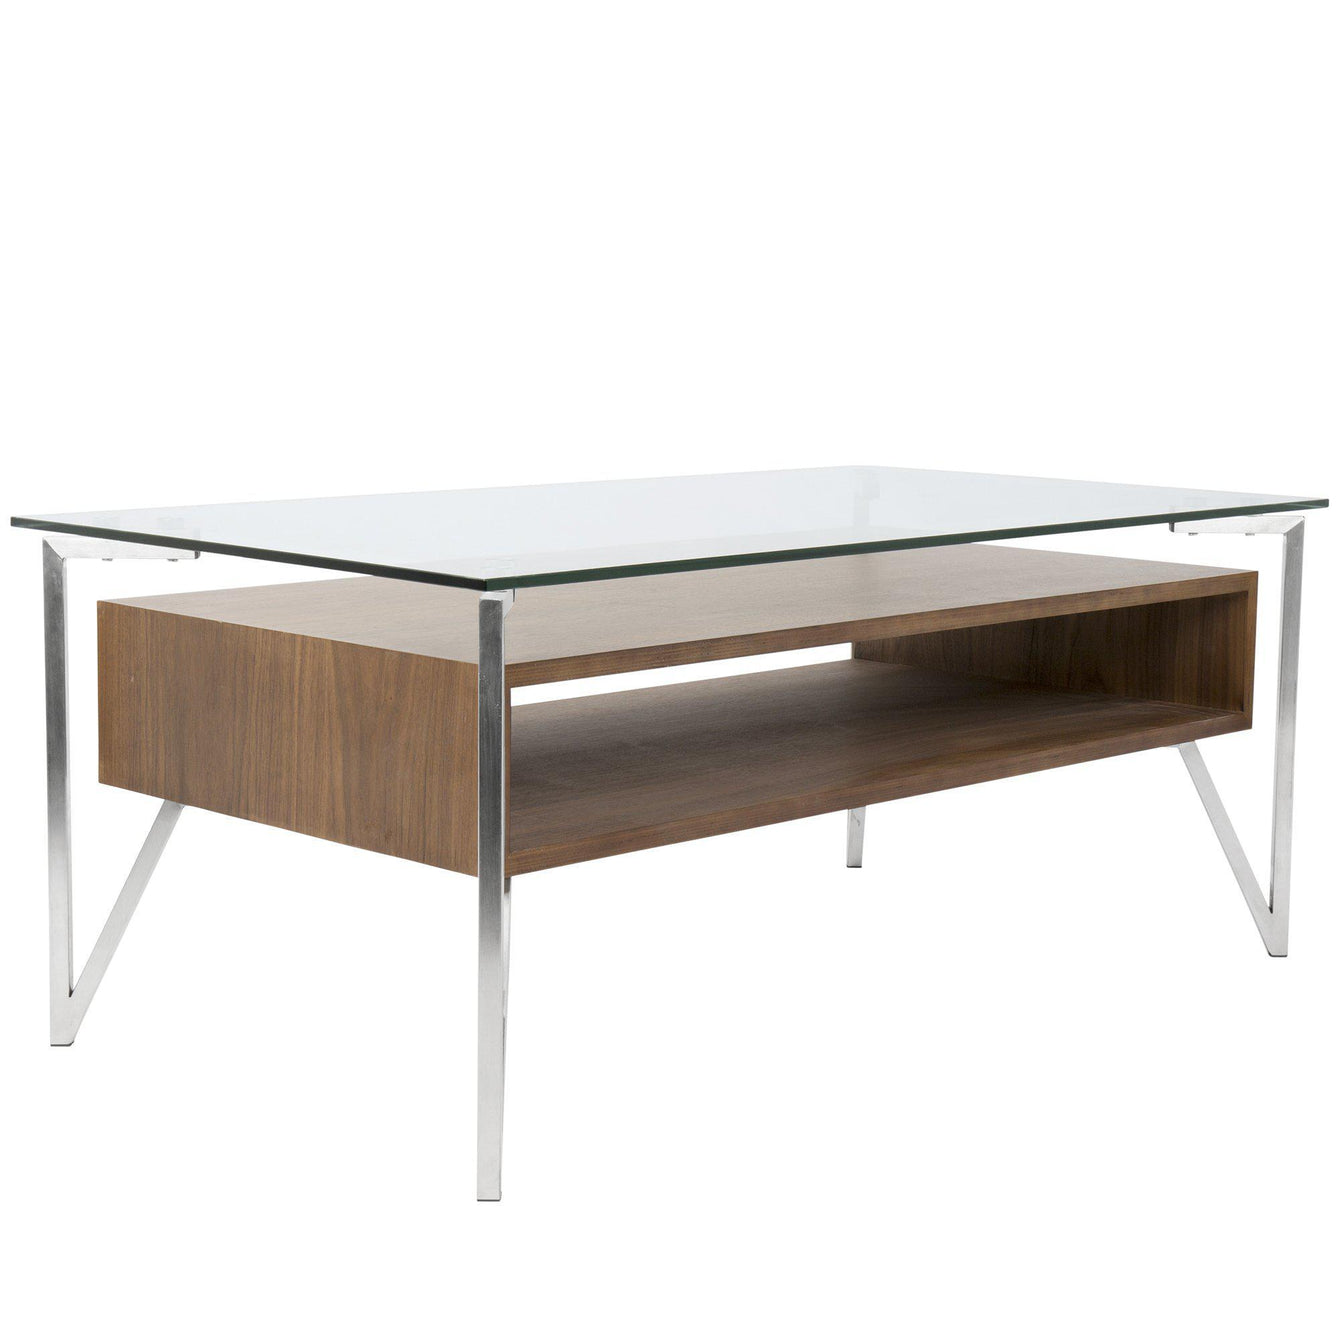 Hover Contemporary Coffee Table with Brushed Stainless Steel Frame, Walnut Wood Shelf, and Clear Glass Top-LUMISOURCE-Peccadilly